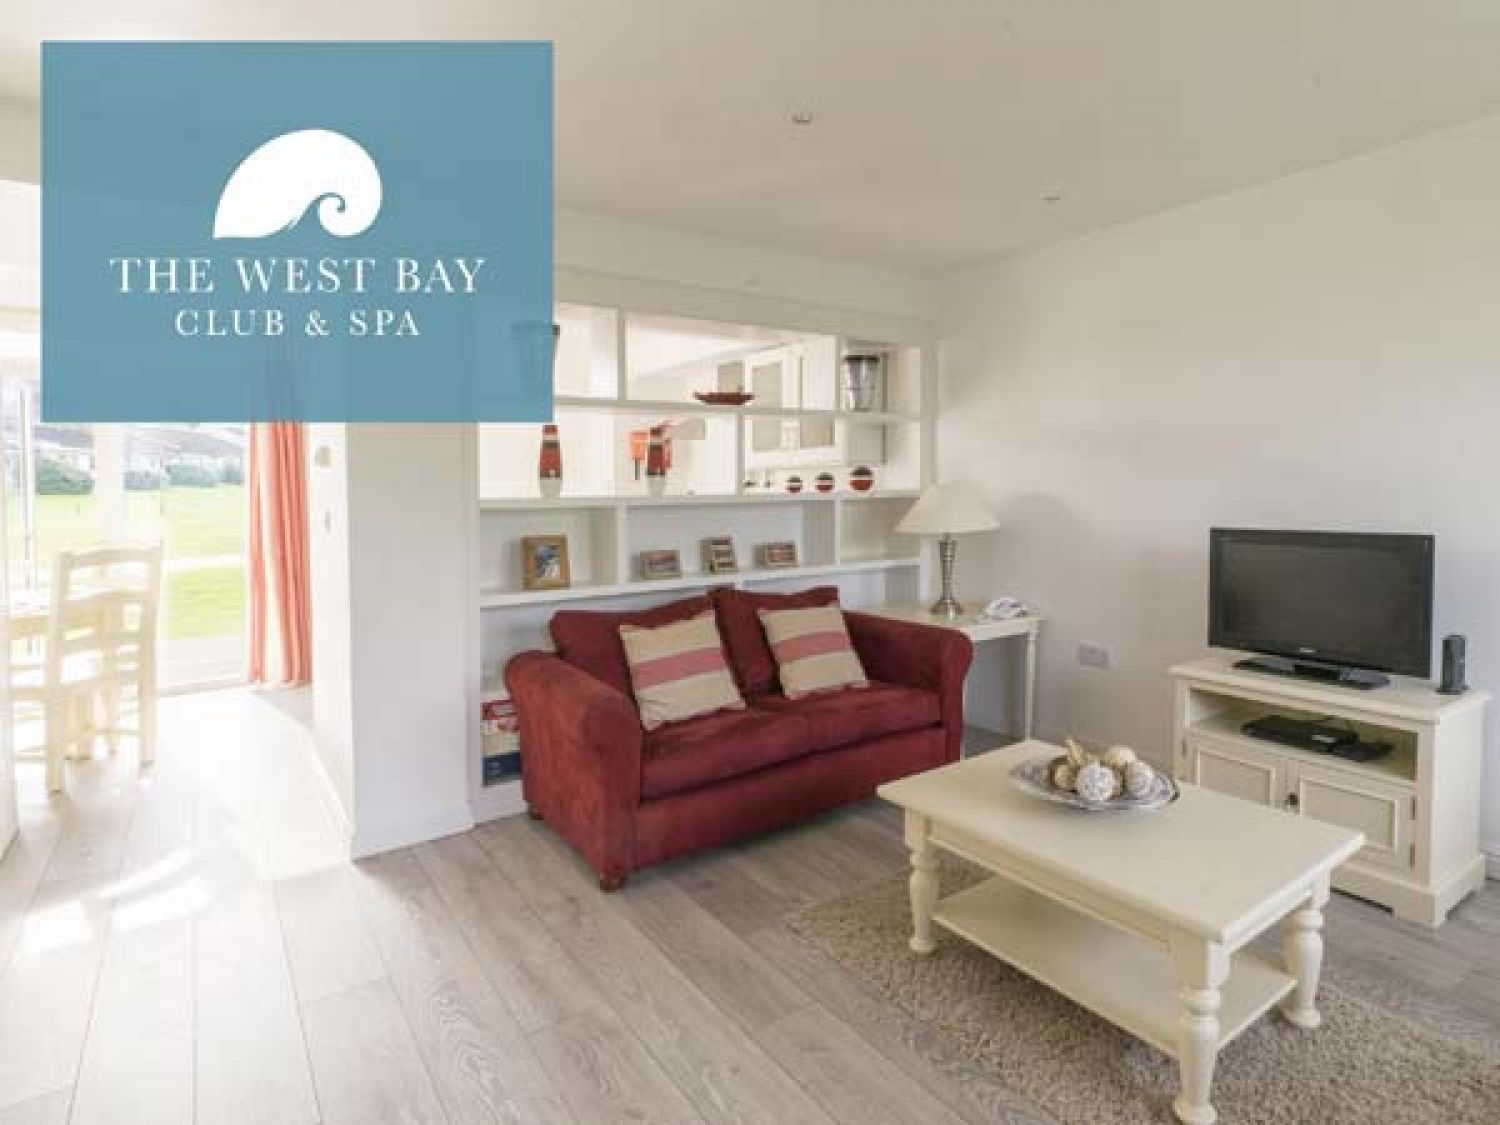 Two bedroom house at The West Bay Club & Spa - Isle of Wight & Hampshire - 943764 - photo 1